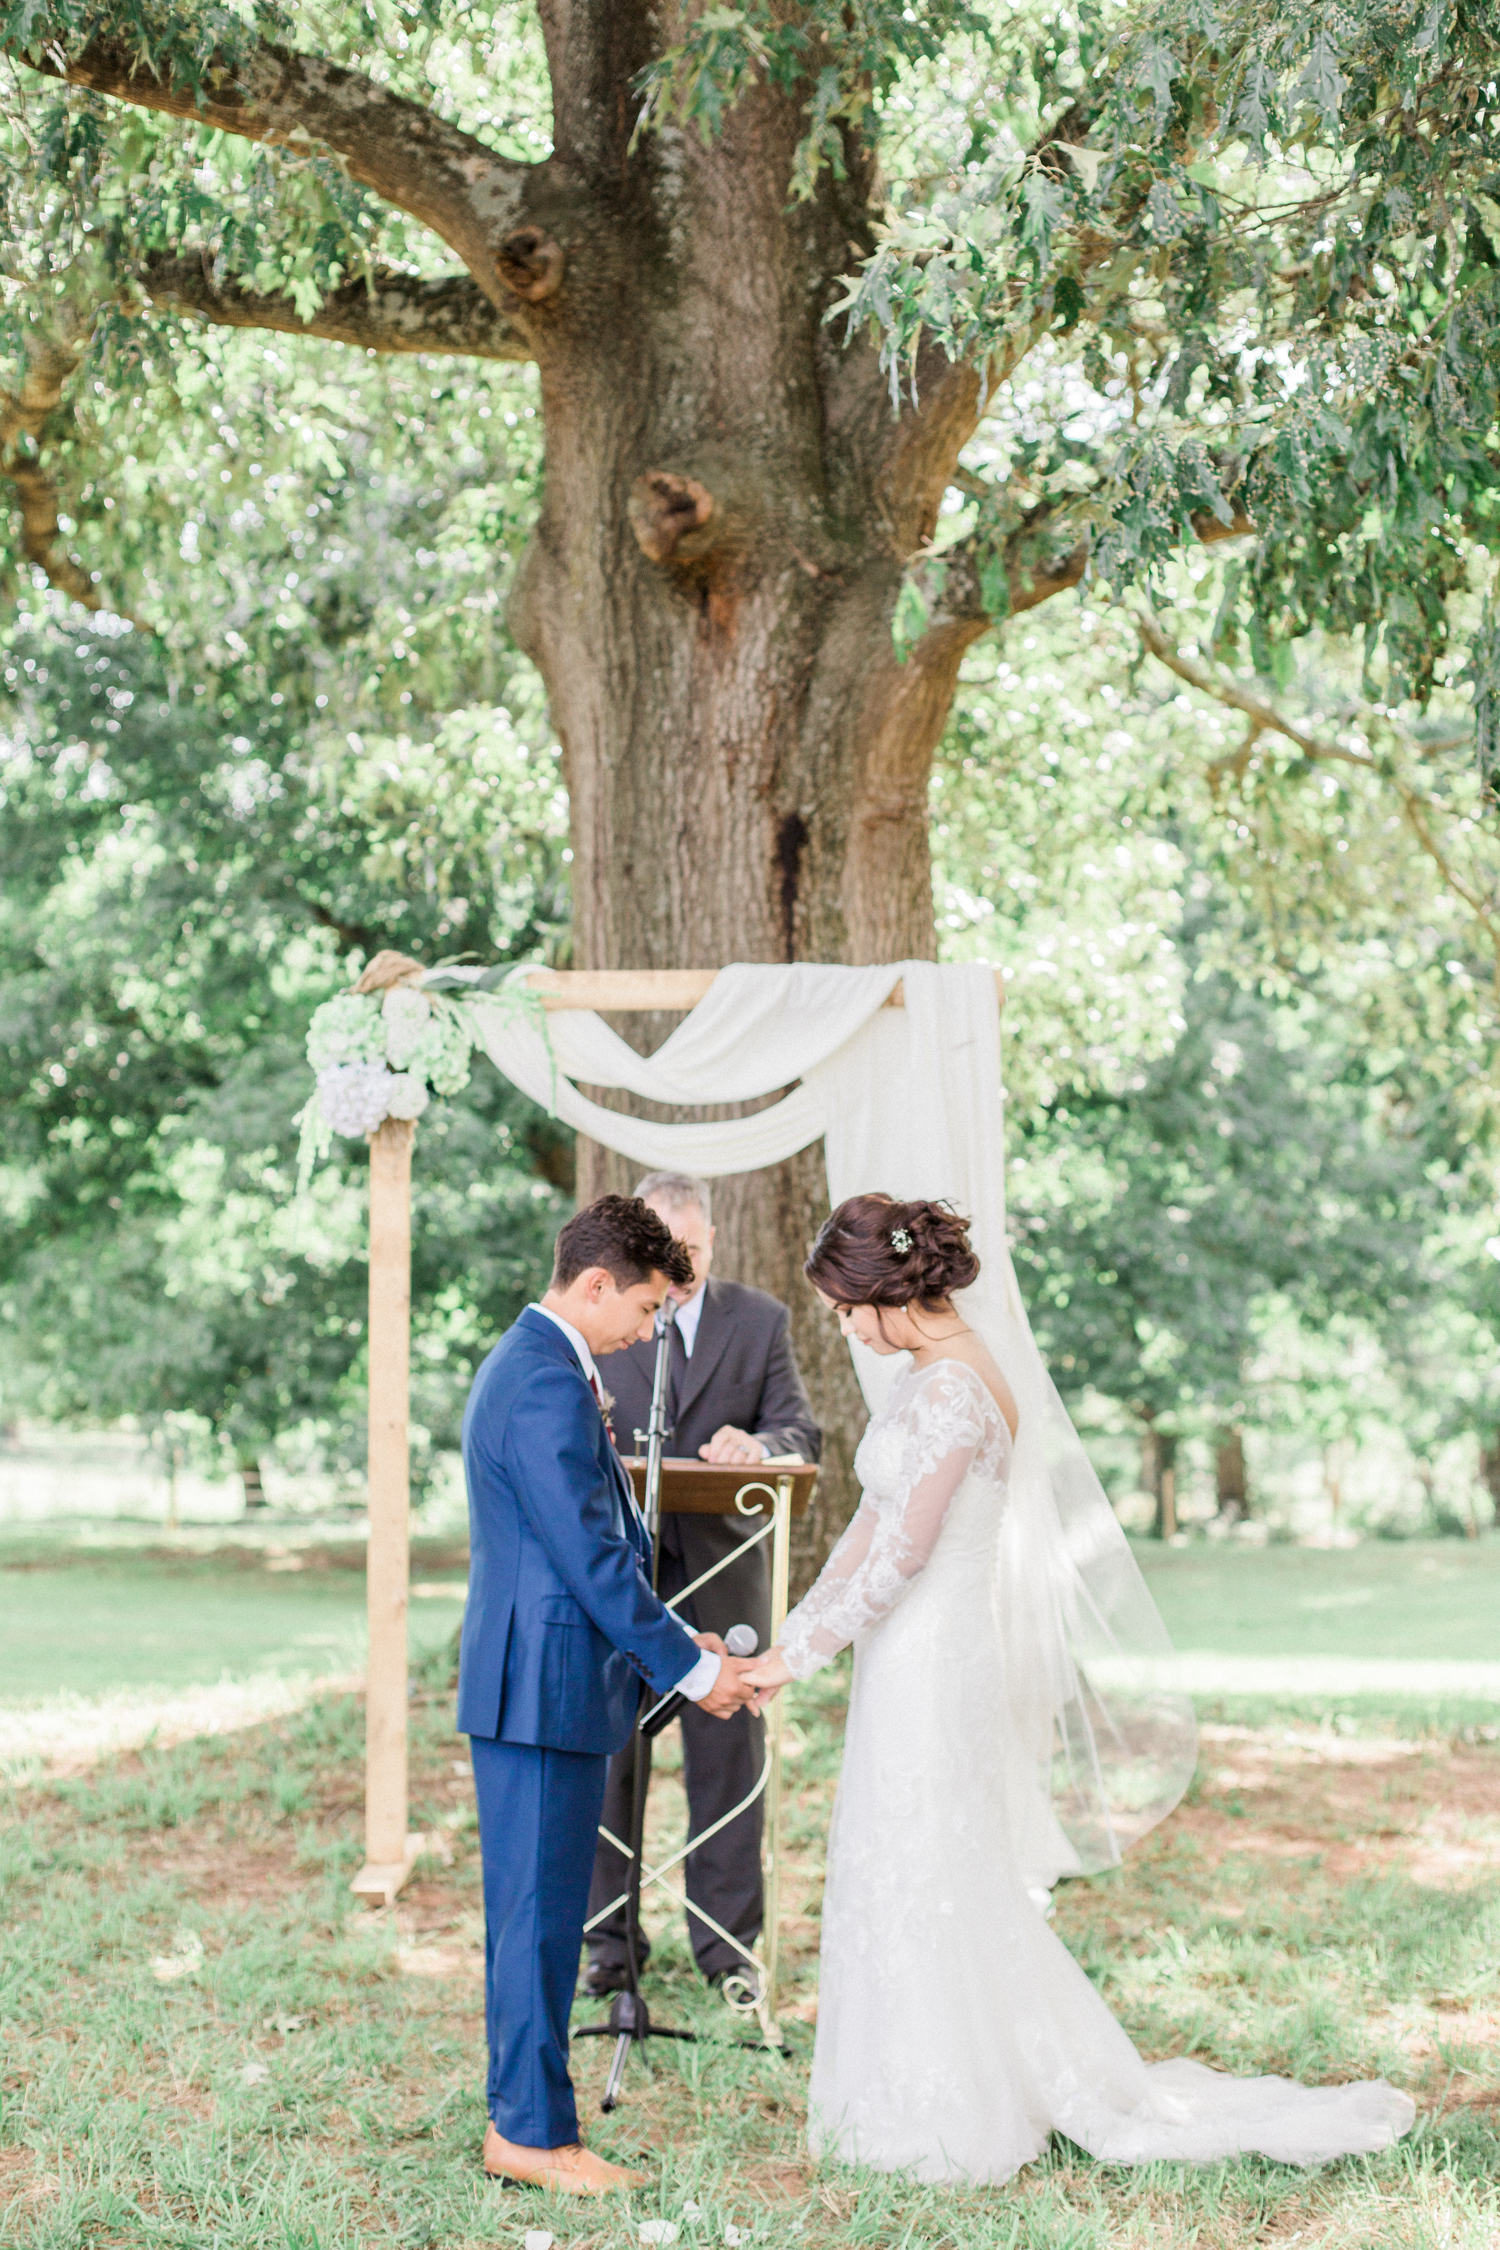 Prayer during outdoor ceremony infant of a wooden arbor decorated with hydrangeas and draped fabric. Summer, outdoor, barn wedding in north Georgia at Hays McDonald Farm in Jefferson, Georgia. Photo by Kesia Marie Photography- Fine Art Wedding Photographer.